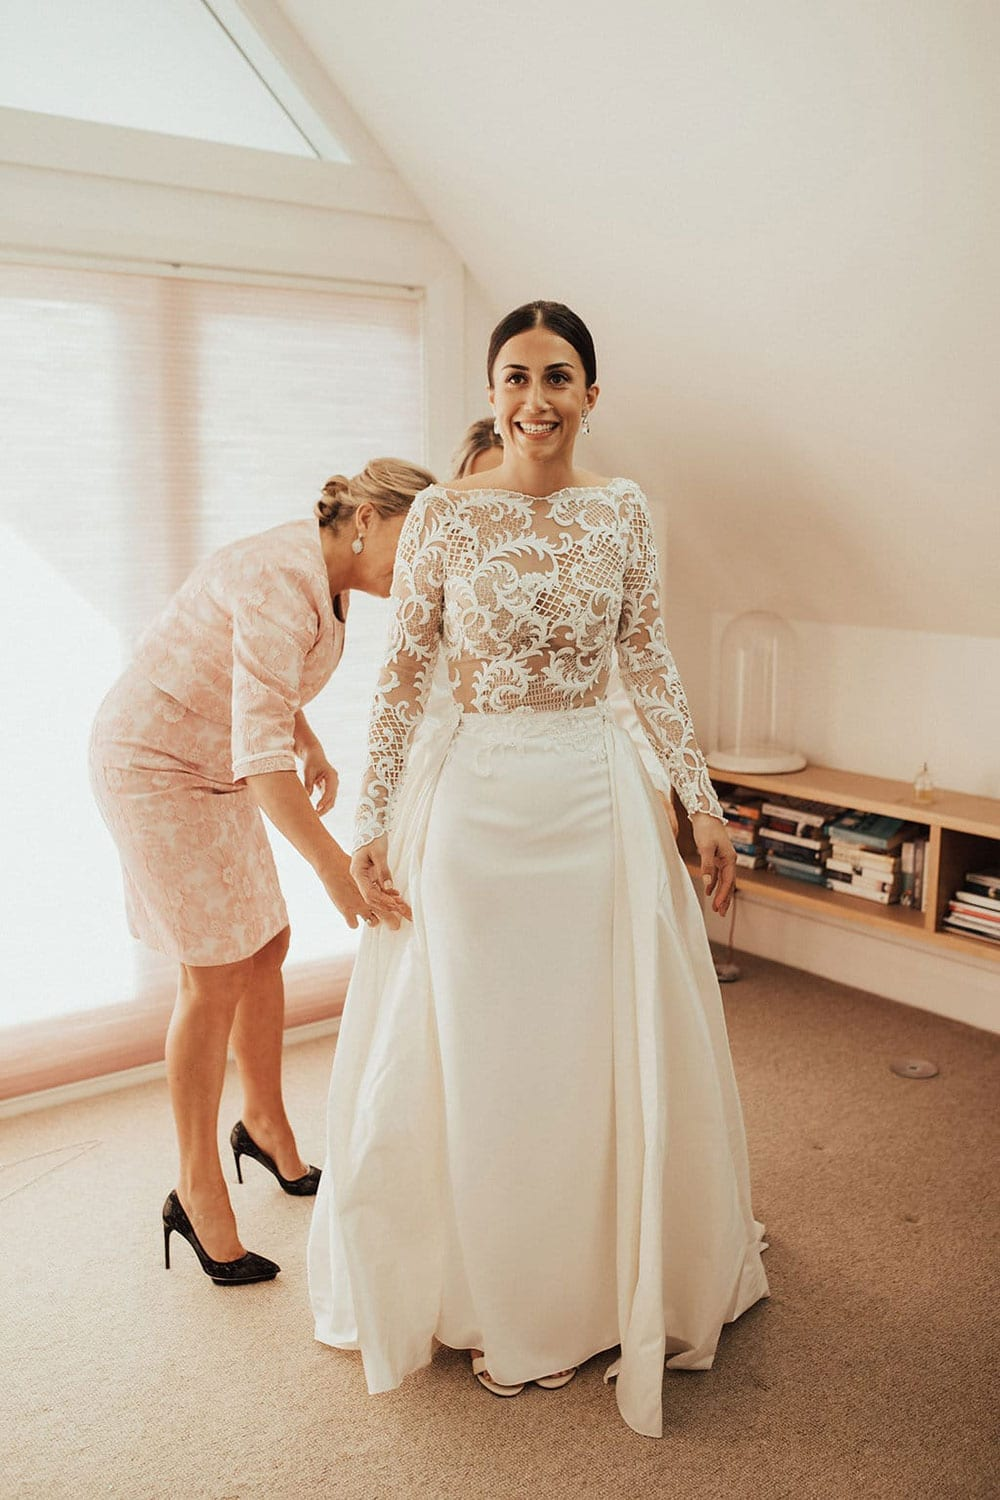 Real Weddings | Vinka Design | Real Brides Wearing Vinka Gowns | Olivia and Ben - Olivia getting ready, beautiful detail of bodice with nude base and lace detail